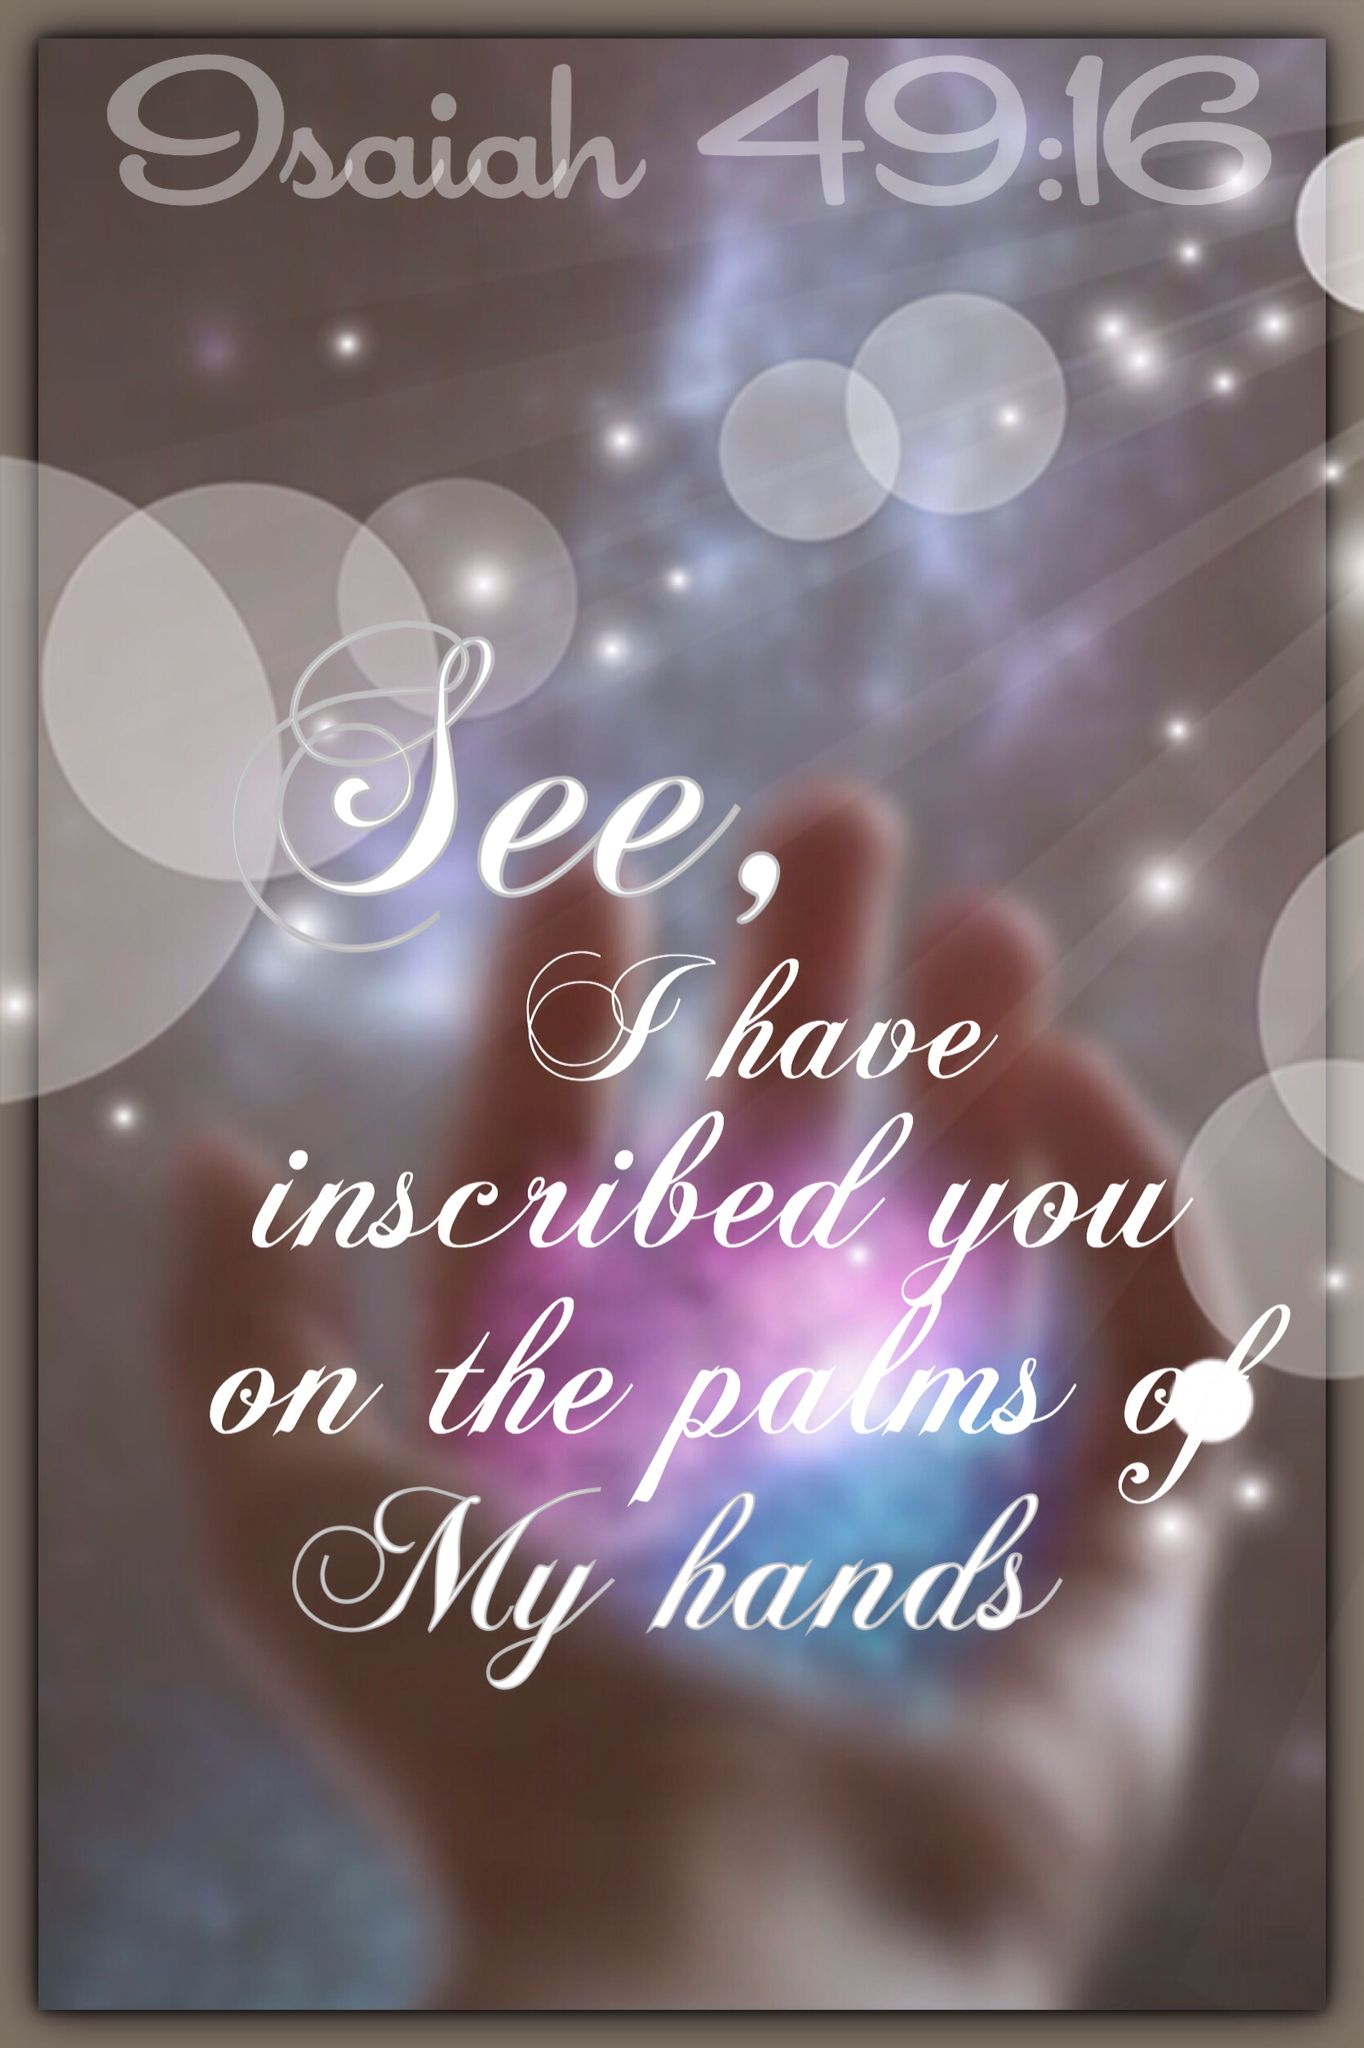 Agape Love Quotes God Loves You So Much That He Has Engraved You On The Palms Of